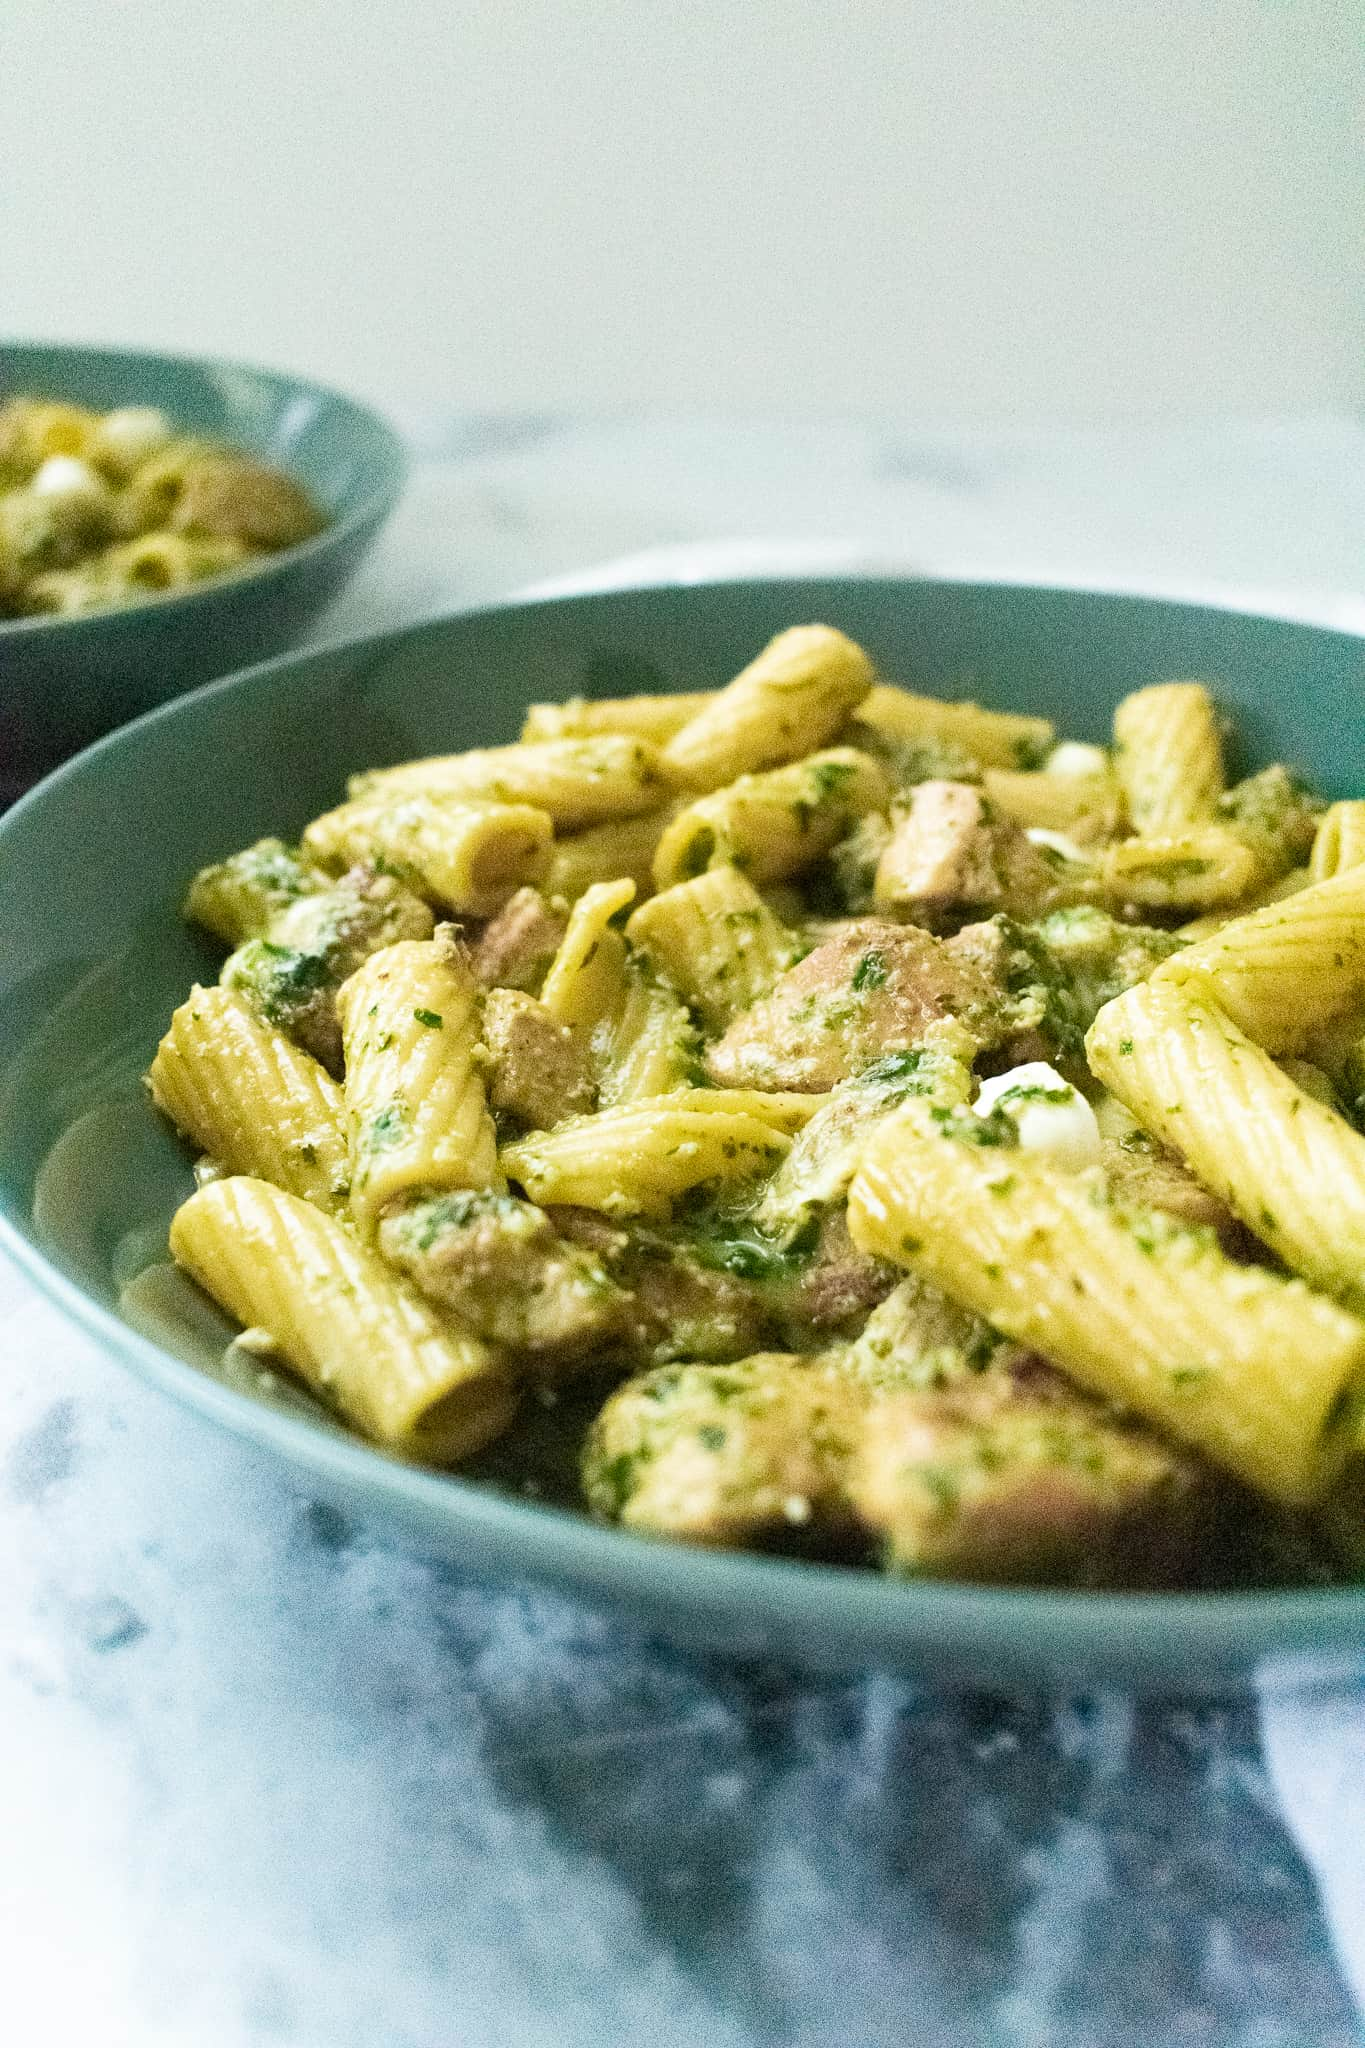 pesto pasta on gray plate